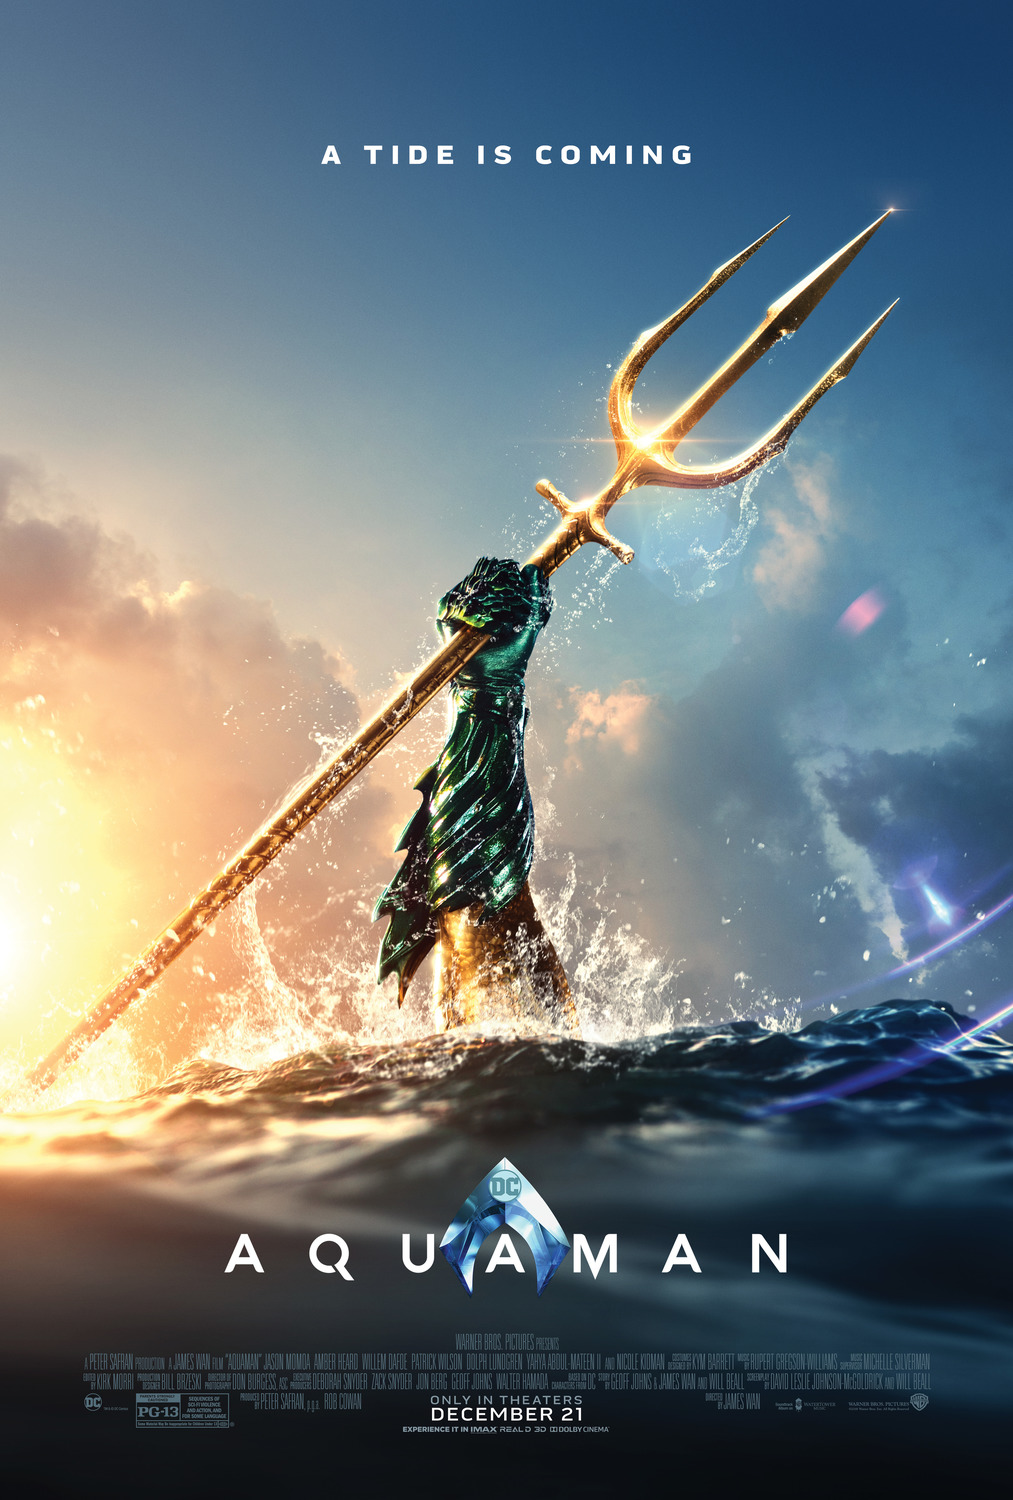 Aquaman tops box office second weekend